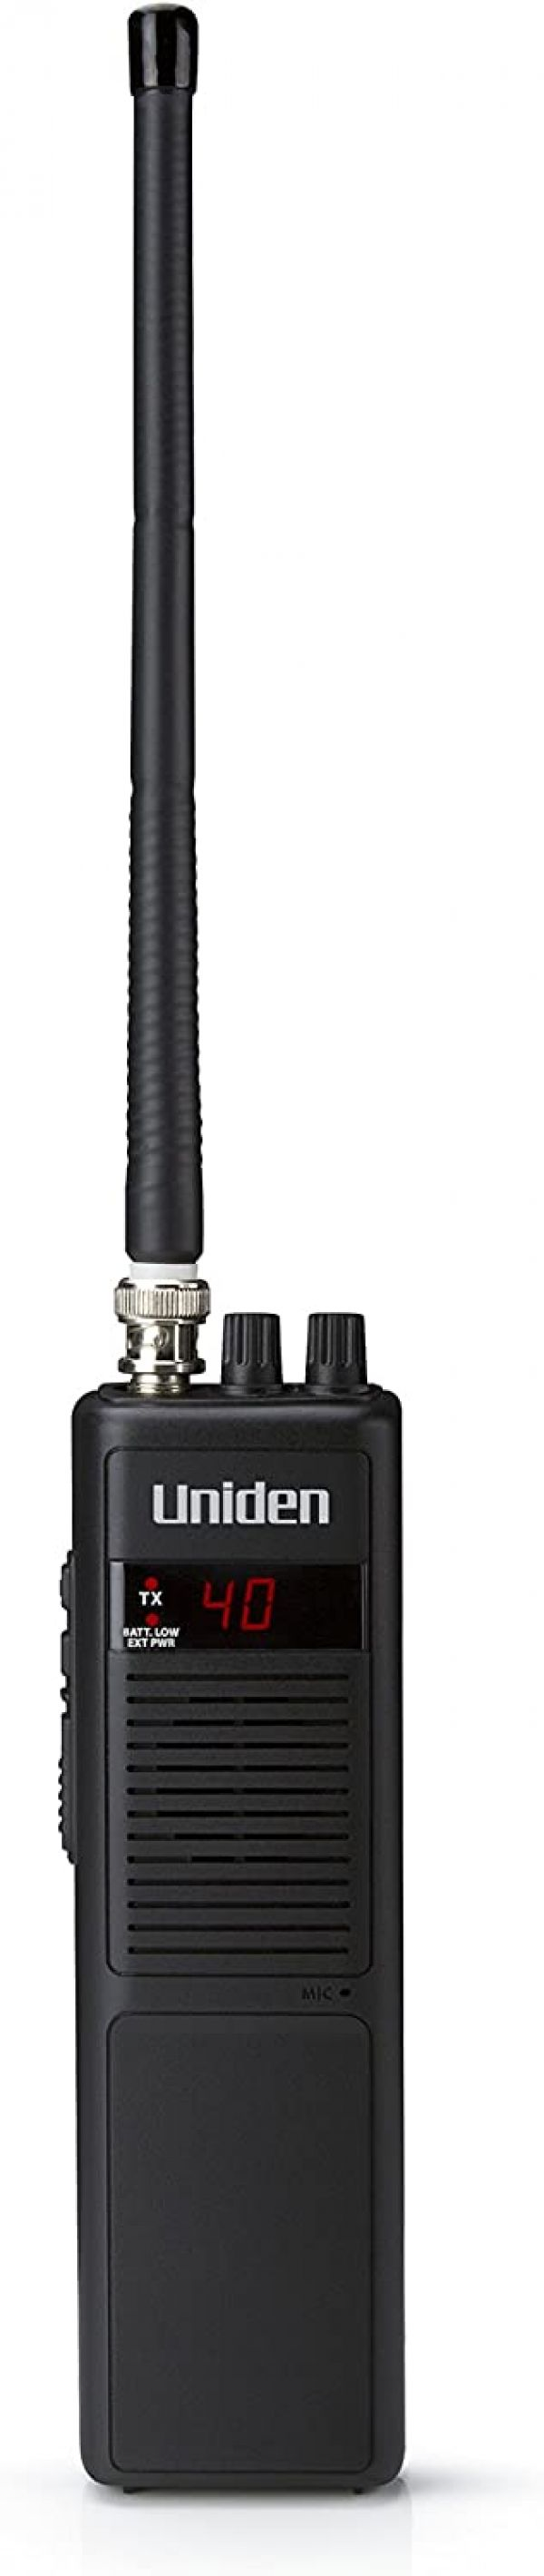 Uniden PRO401HH Professional Series 40 Channel Handheld CB Radio, 4 Watts Power with Hi/Low Power Switch, Auto noise cancellation, Belt Clip And Strap Included, 2.75in. x 4.33in. x 8.66in.